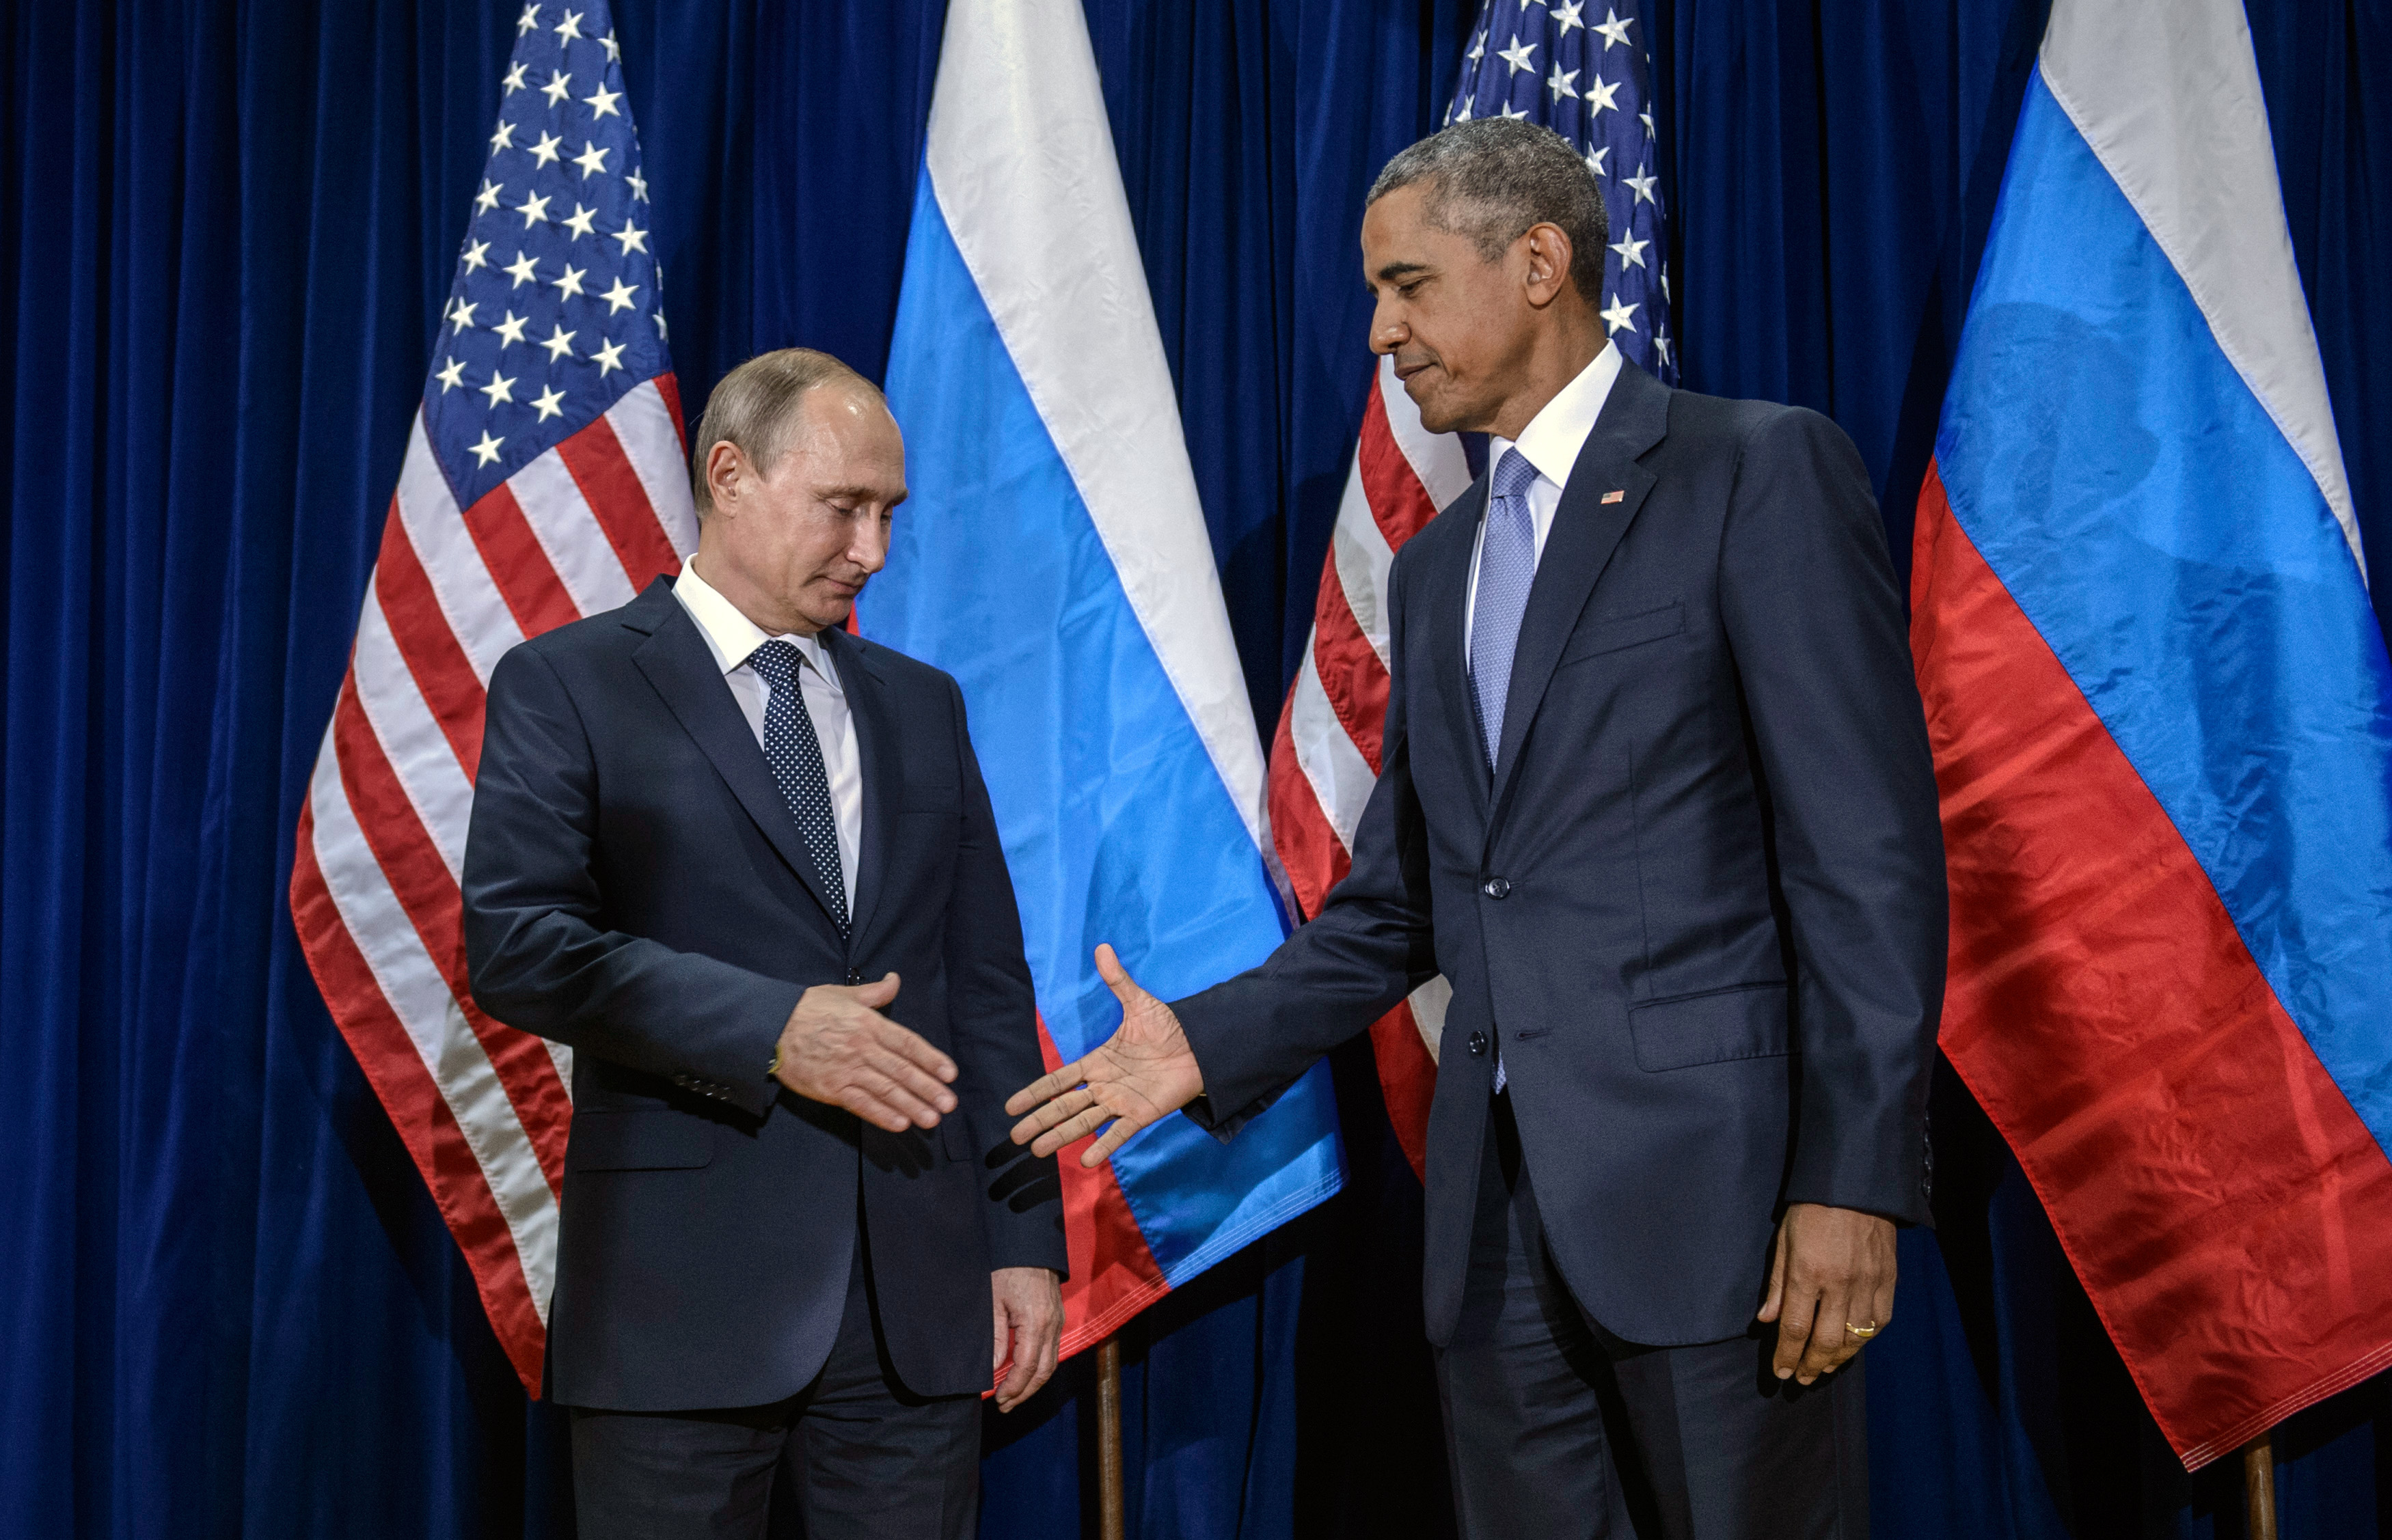 Russian President Vladimir Putin (L) and U.S. President Barack Obama shake hands for the cameras before the start of a bilateral meeting at the United Nations headquarters  in New York City on Sept. 28, 2015.